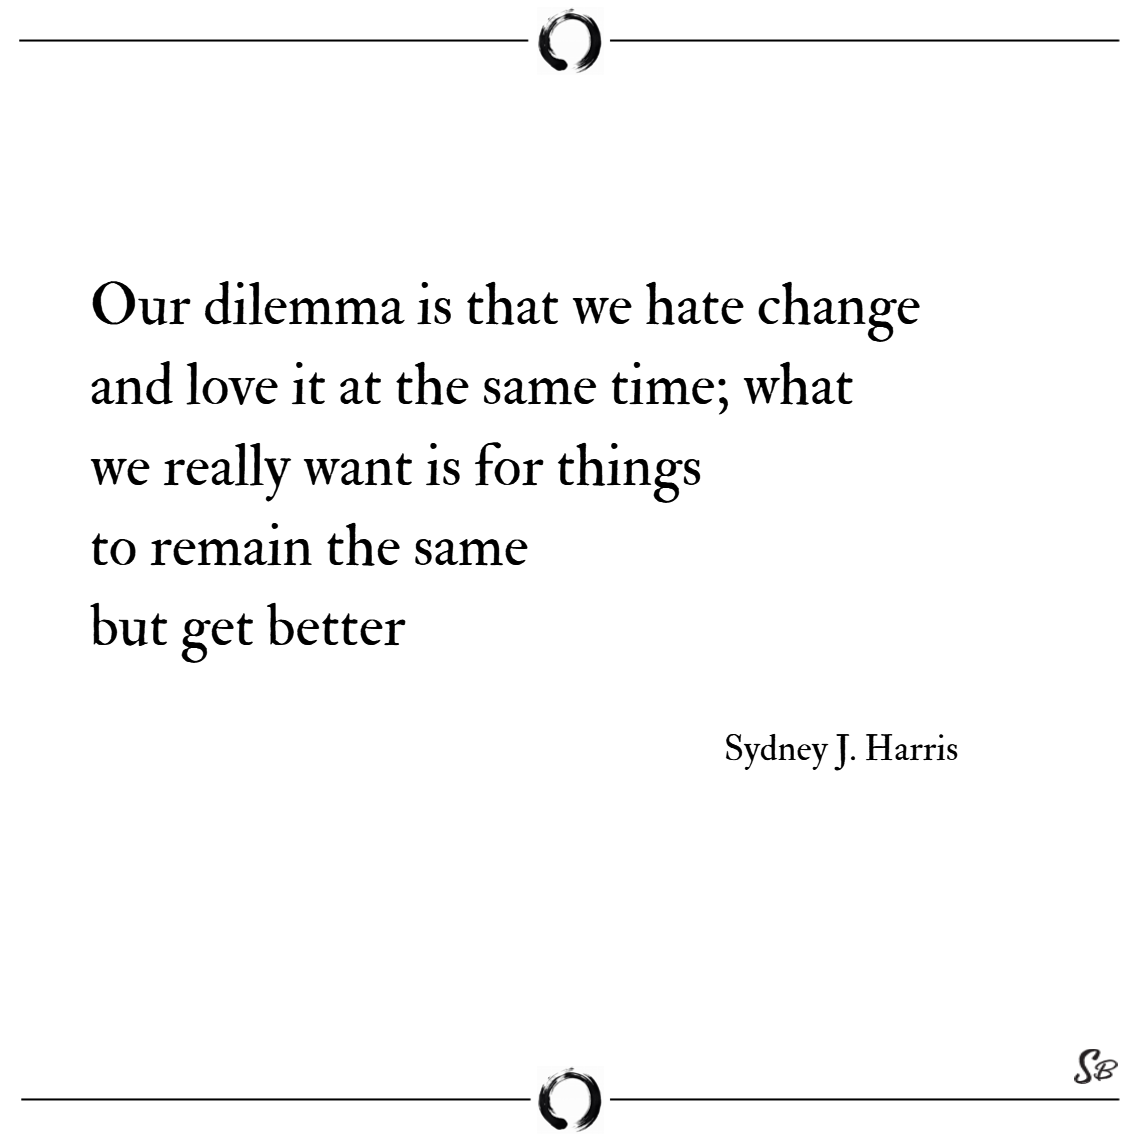 Our dilemma is that we hate change and love it at the same time; what we really want is for things to remain the same but get better. – sydney j. harris